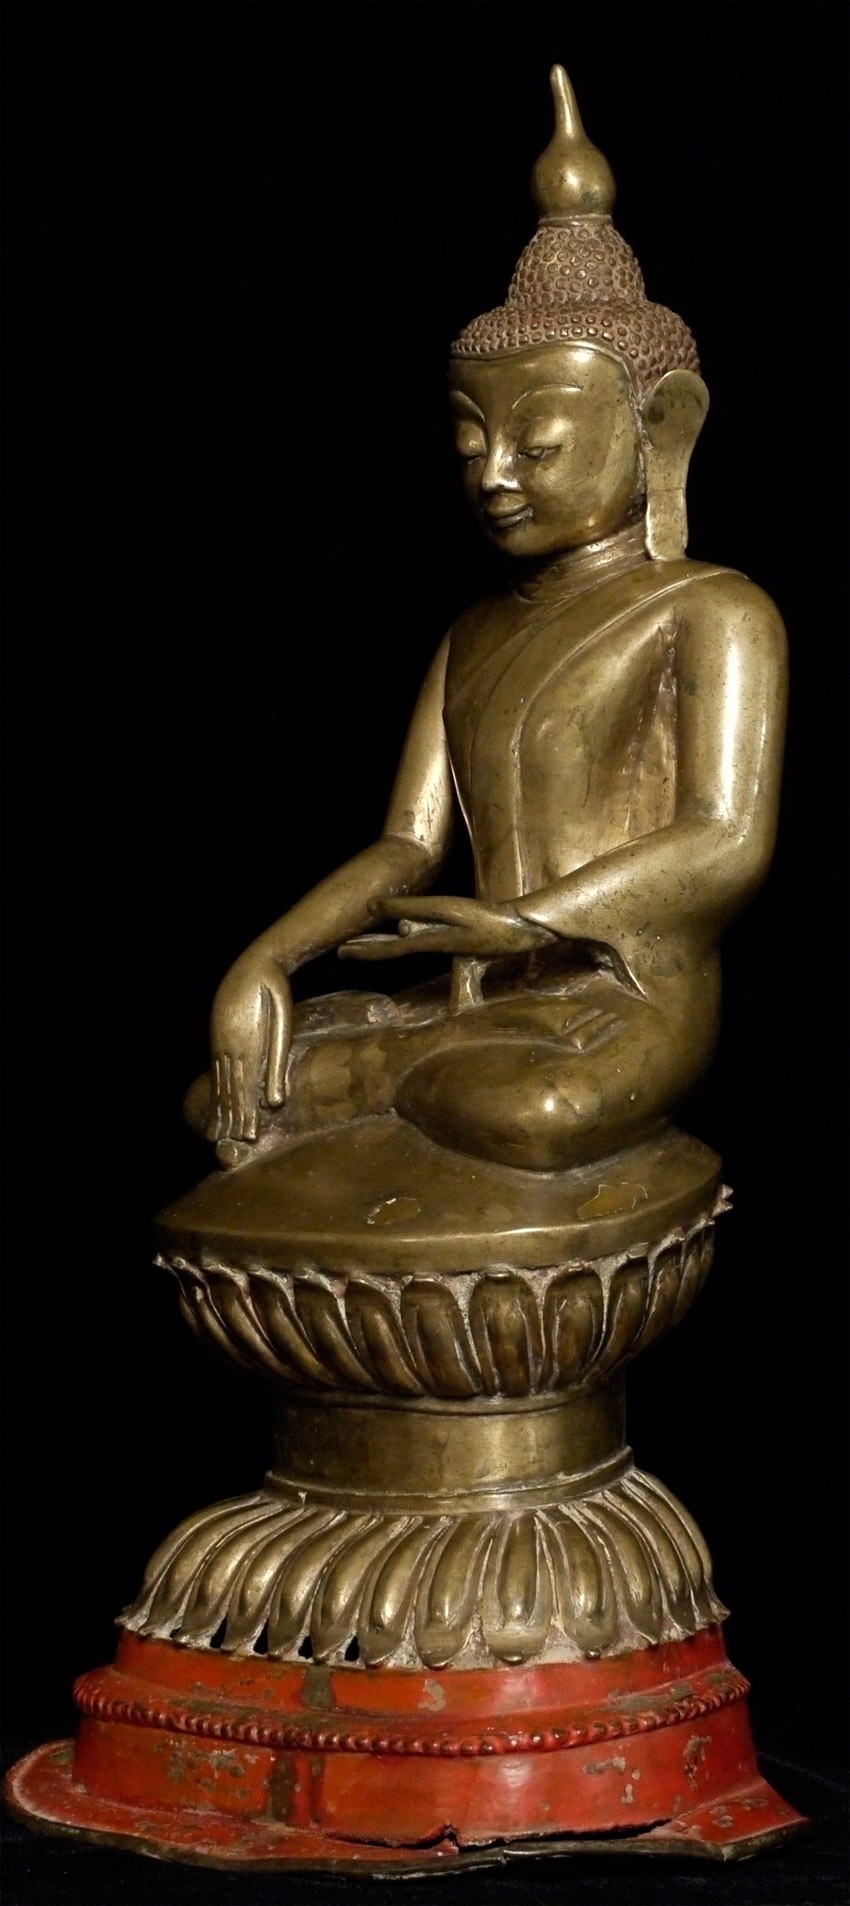 Antique Burmese Shan Buddha statue from Burma made from Bronze